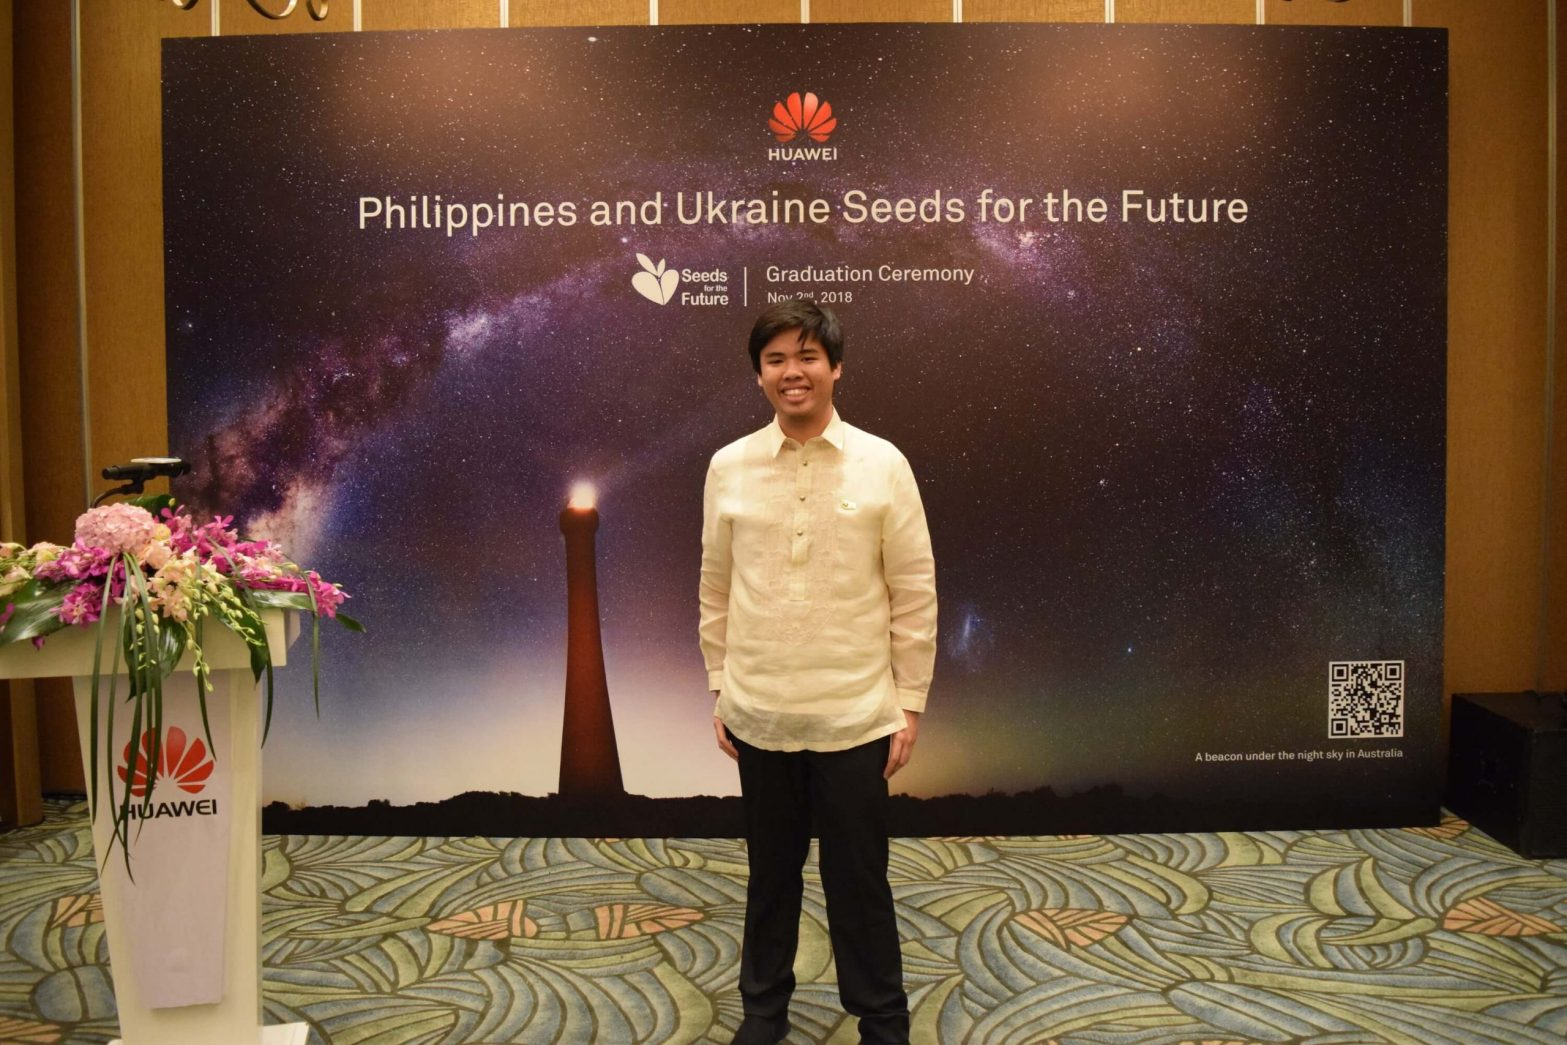 Cris Militante Seeds for the Future